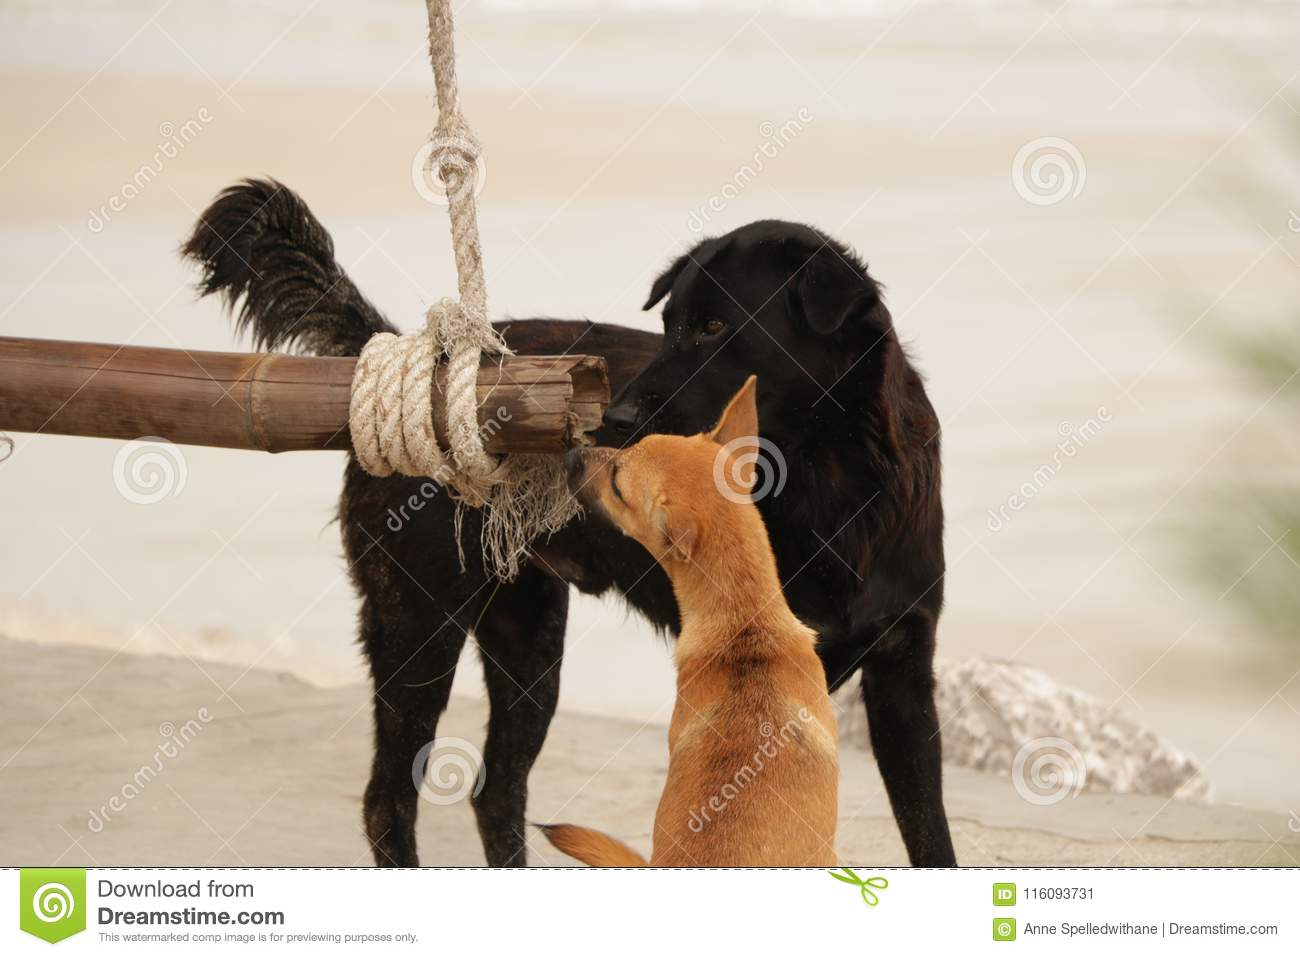 Dogs Sharing Wood Swing on the Beach